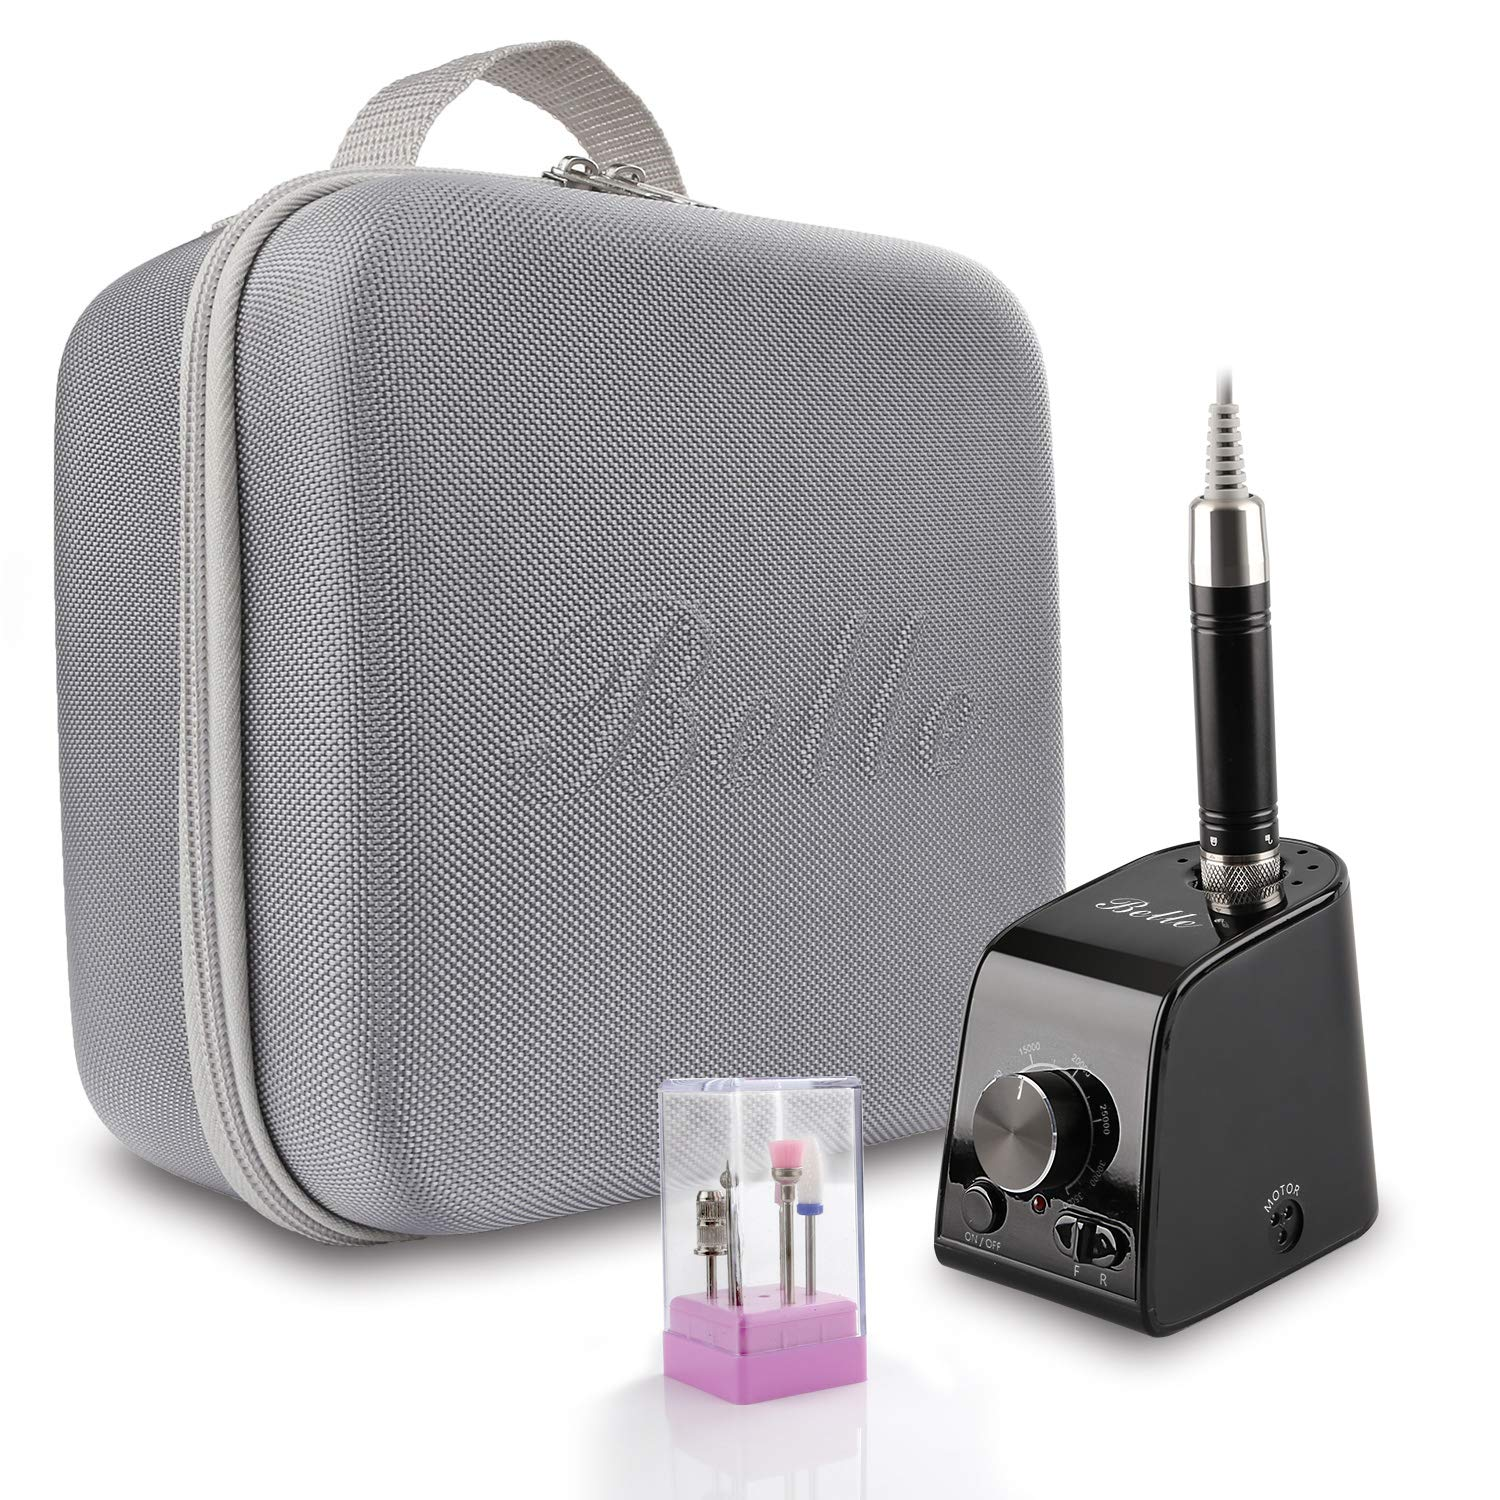 Belle Newest 35000RPM Vertical Nail Drill Electric Brushless Efile Manicure Pedicure Drill with a Portable Bag for Acrylic Gel Nails, Black